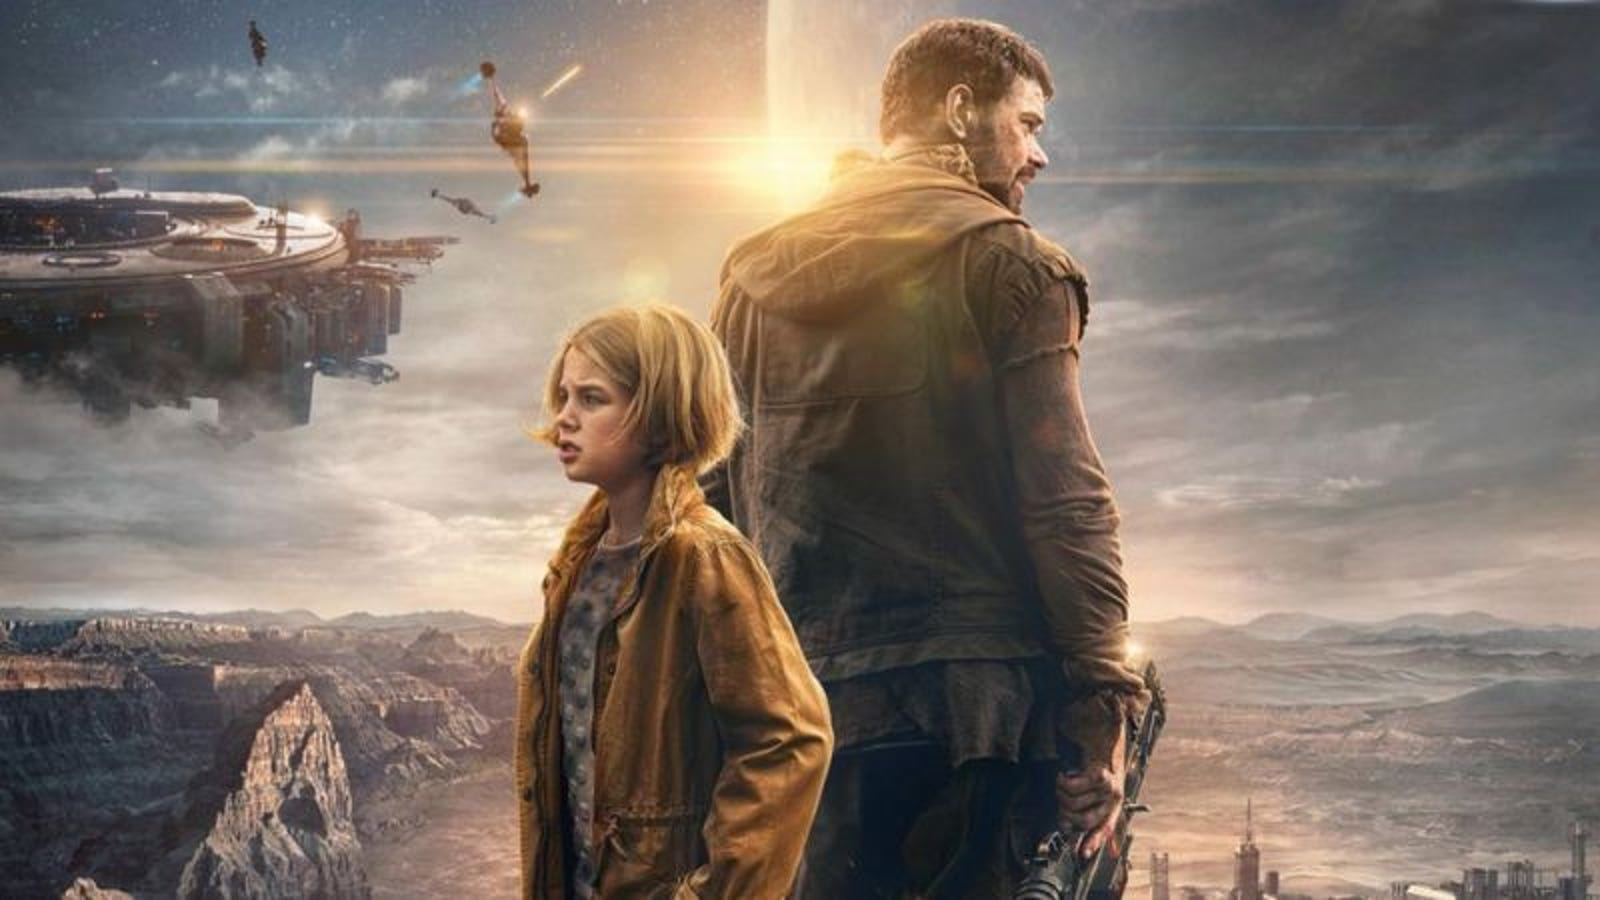 10 Australian Scifi Movies You Need to Watch